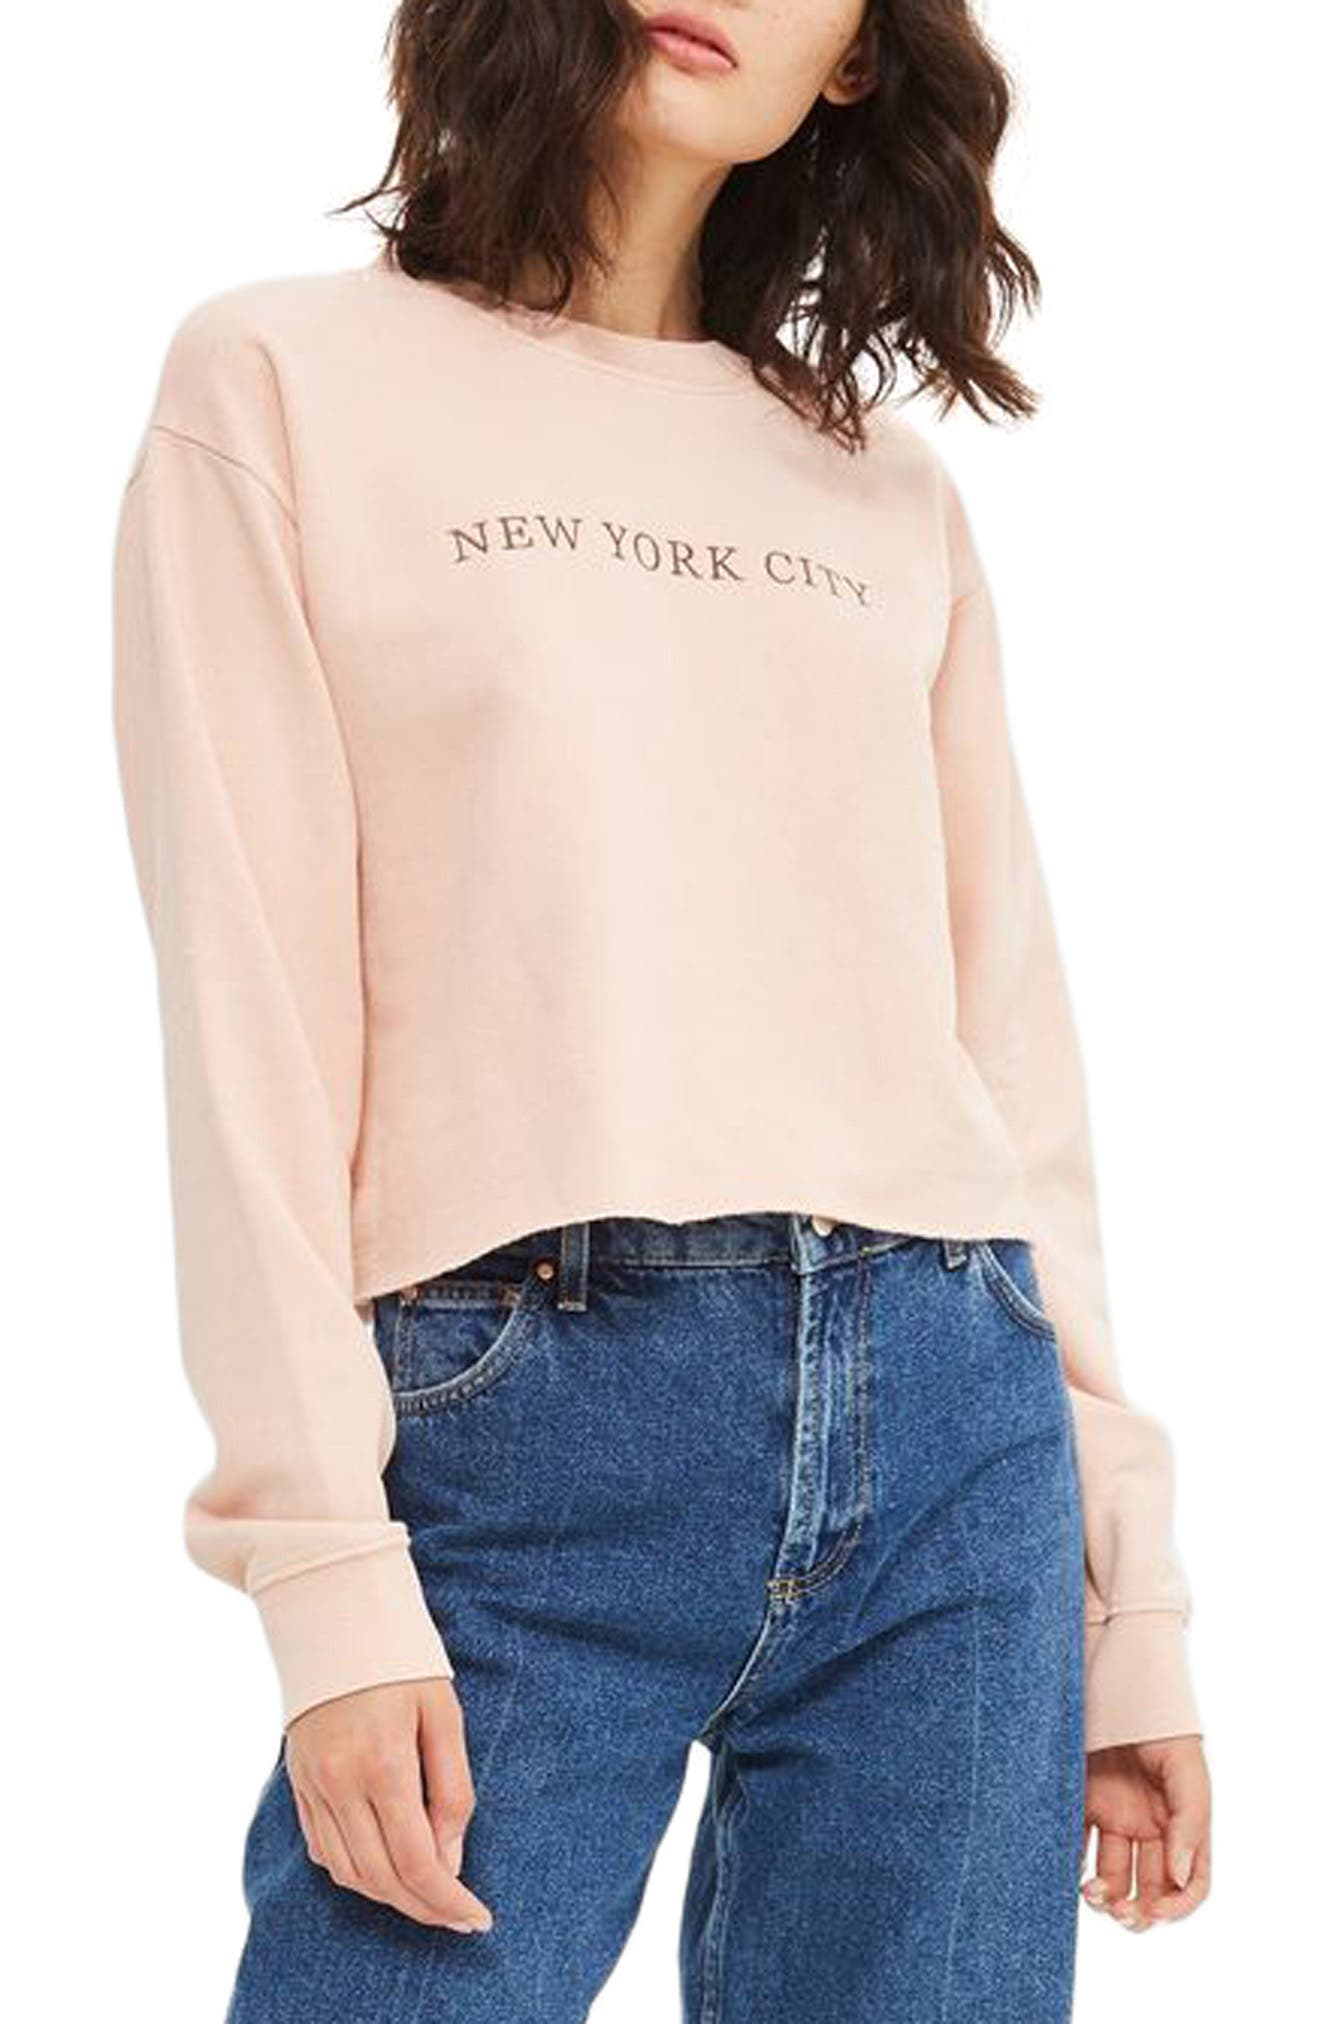 New York City Embroidered Sweatshirt,                             Main thumbnail 1, color,                             Pink